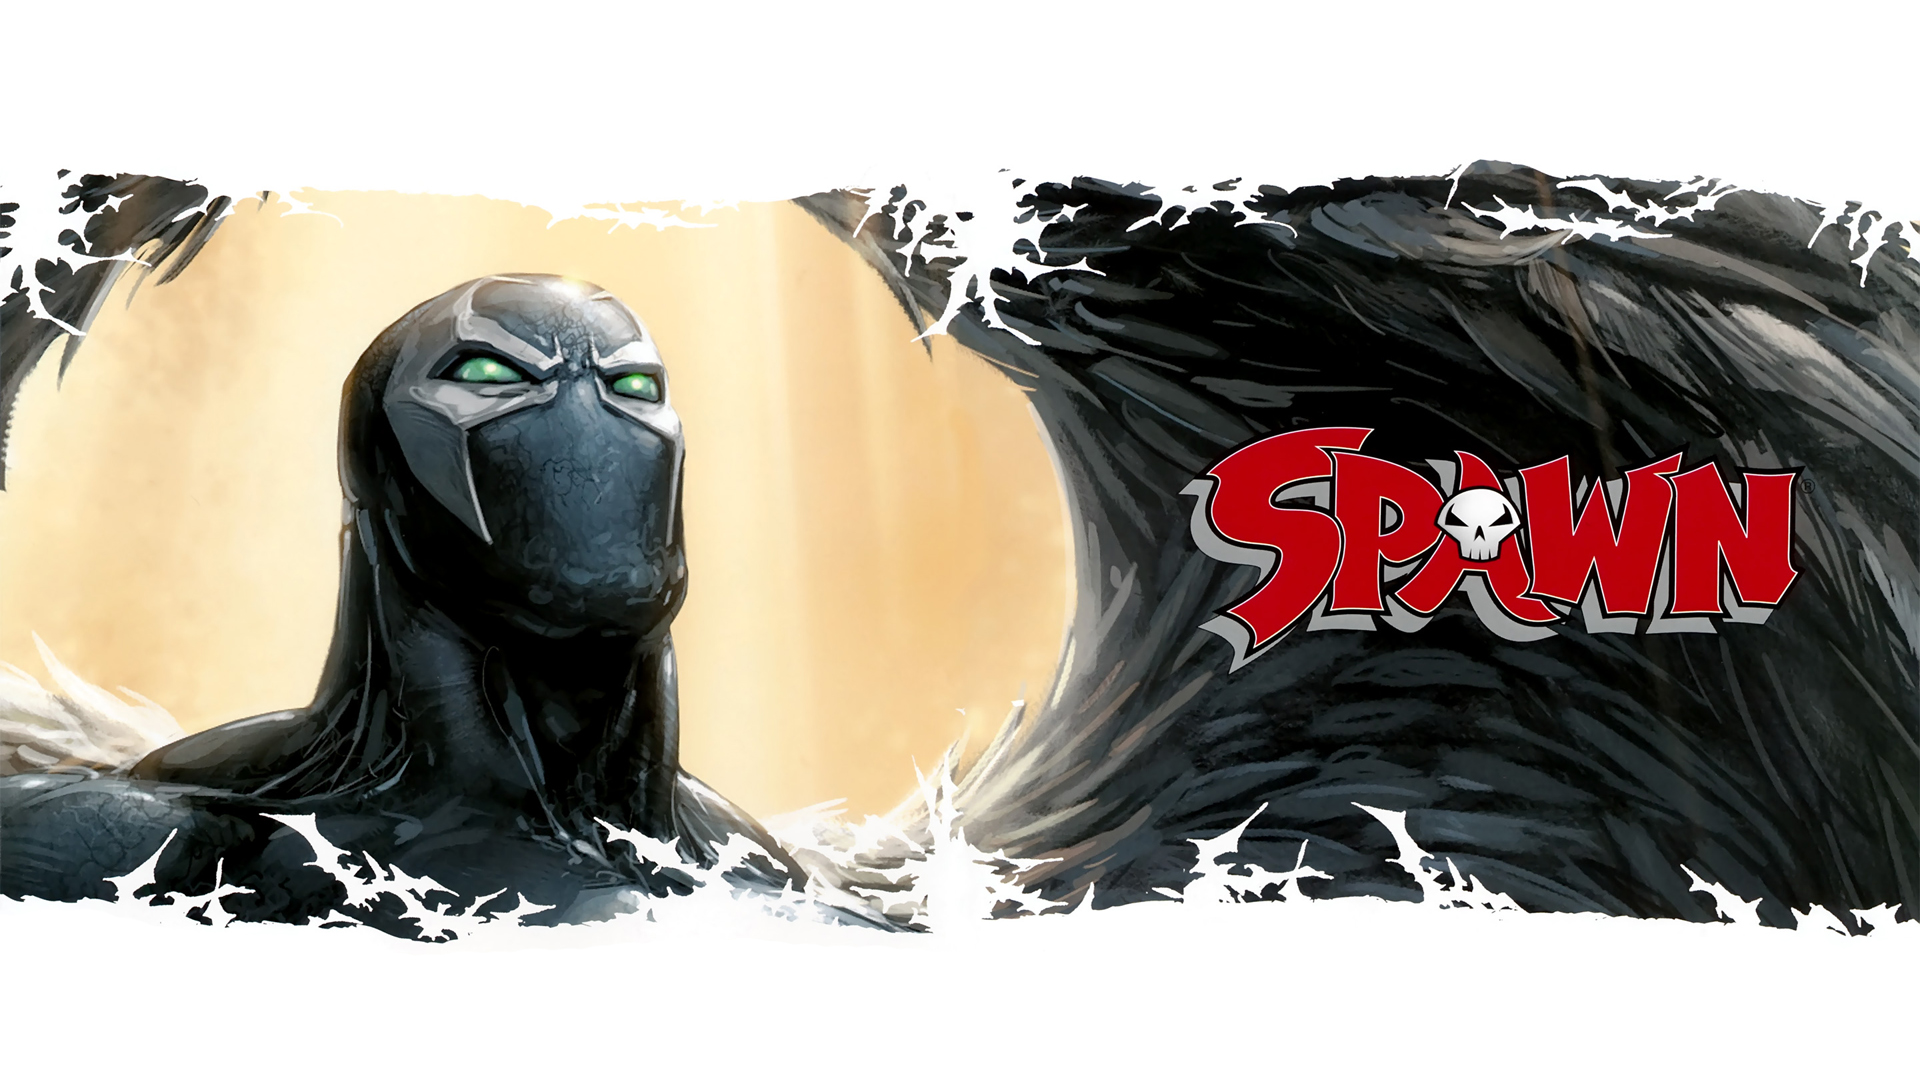 Spawn Wallpaper Hd 1920x1080: Spawn Full HD Wallpaper And Background Image